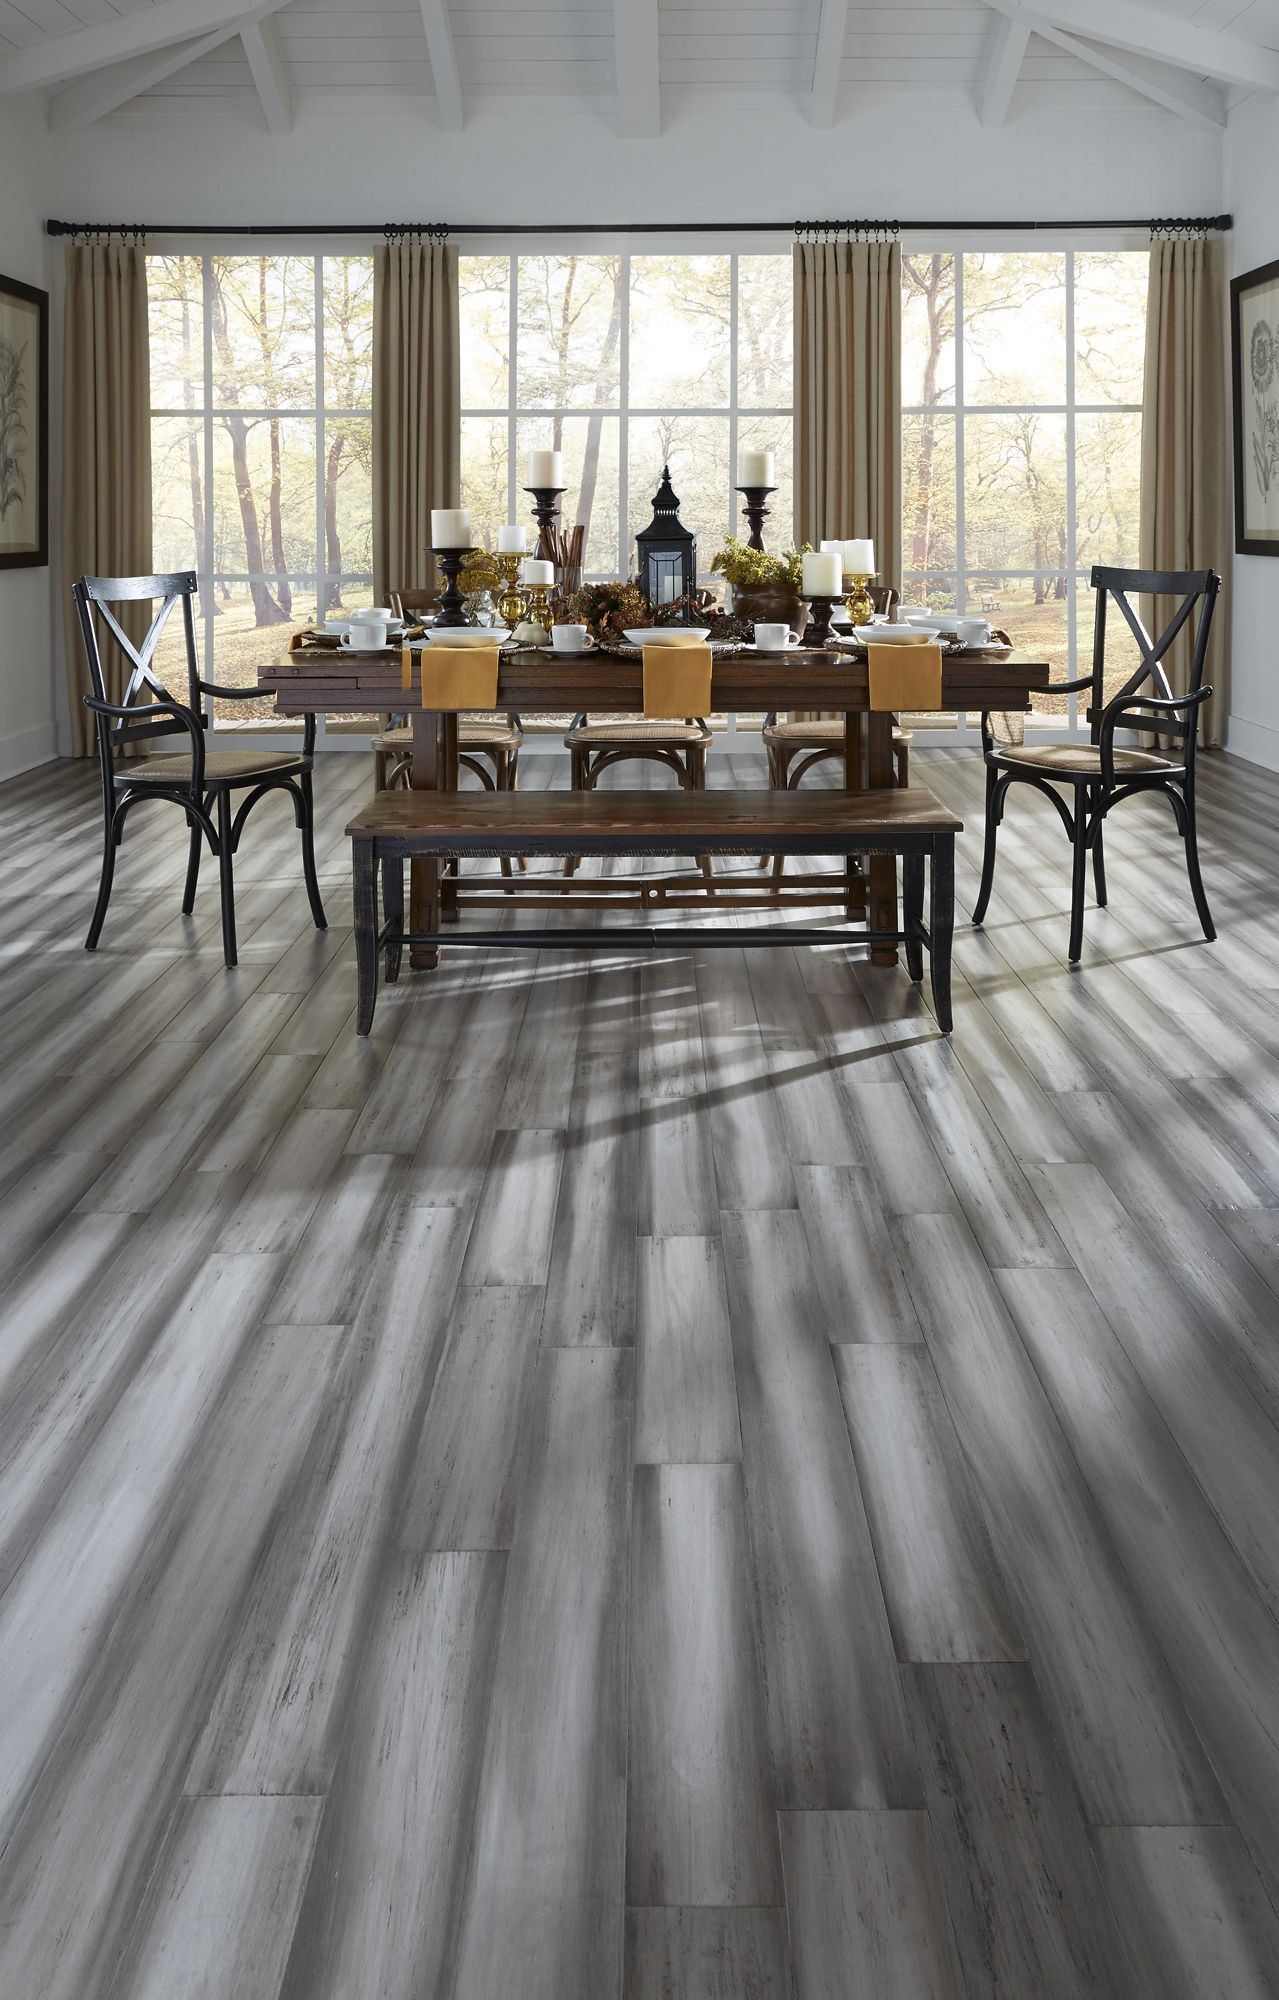 dark maple hardwood flooring of modern design and rustic texture pair perfectly with the stately intended for modern design and rustic texture pair perfectly with the stately blend of light and dark gray shades to offer instant charm in silver stone distressed